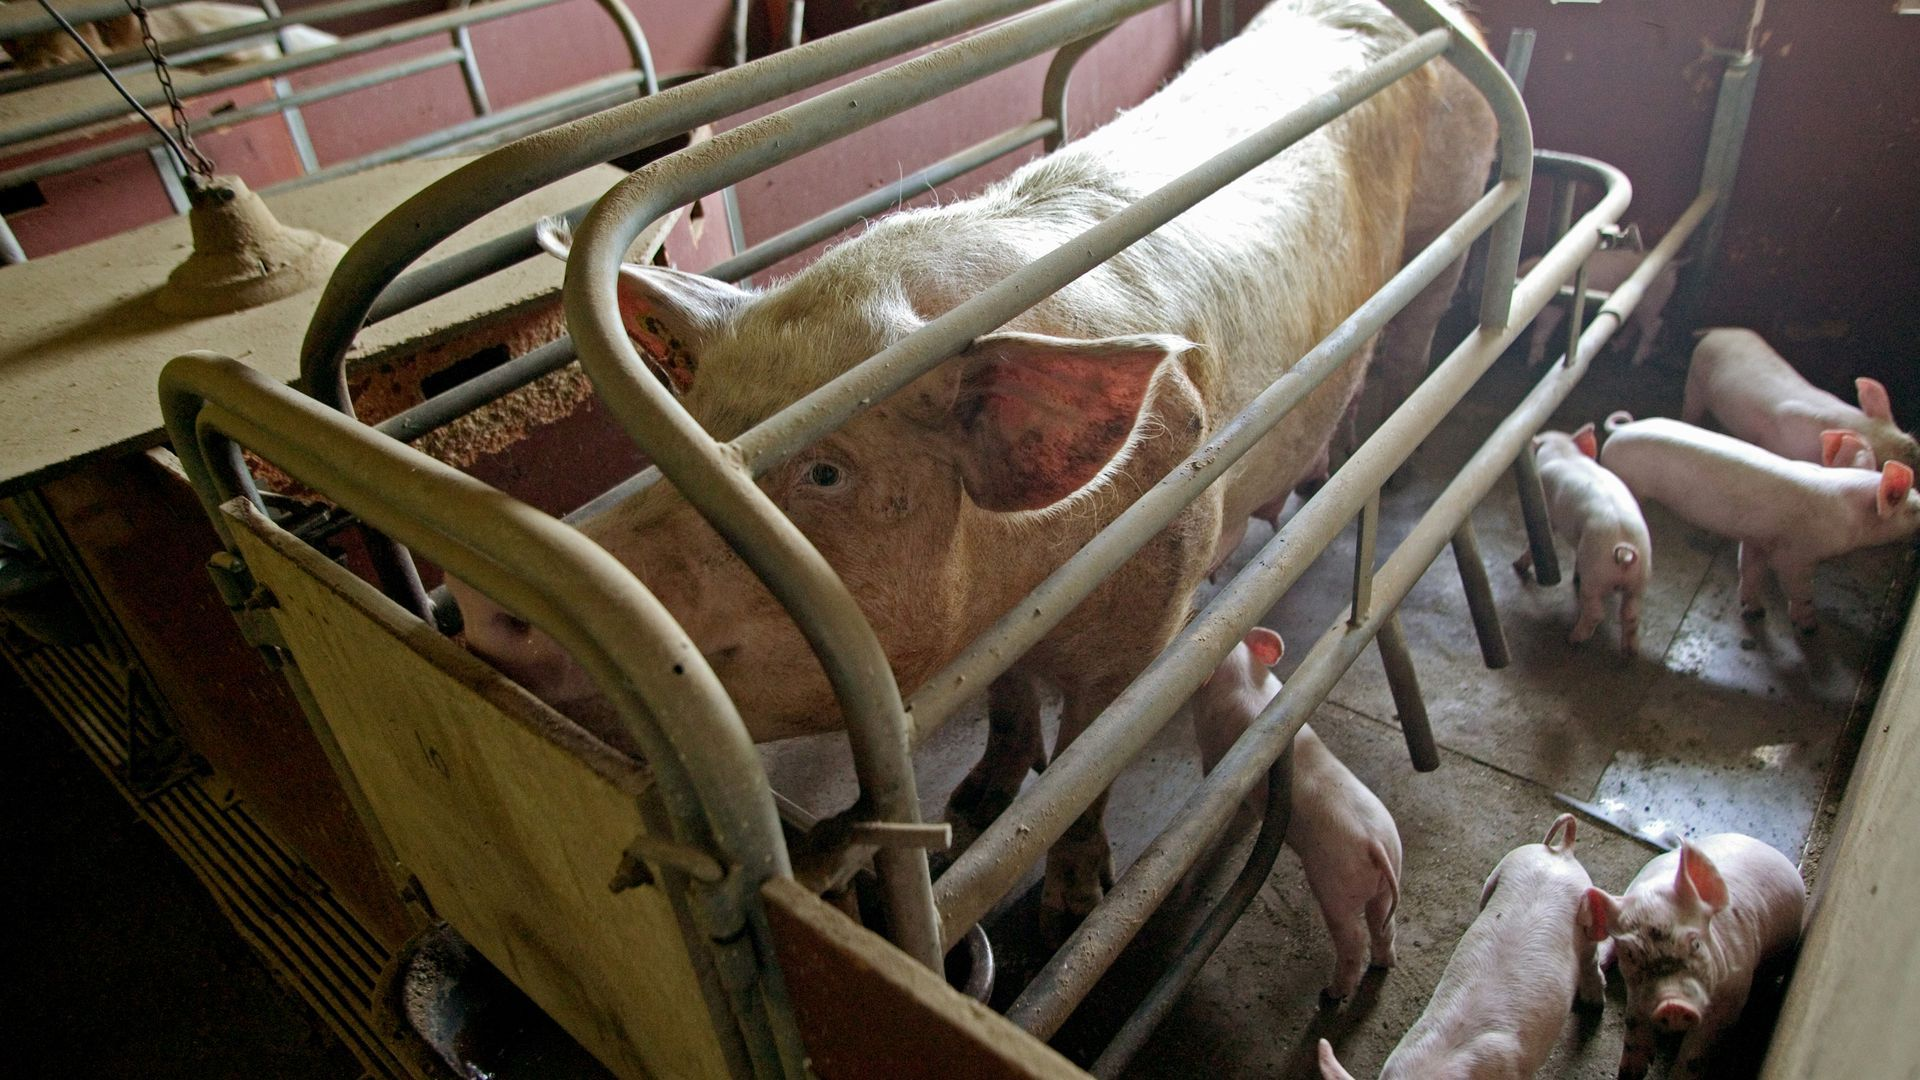 Pigs in a sow stall